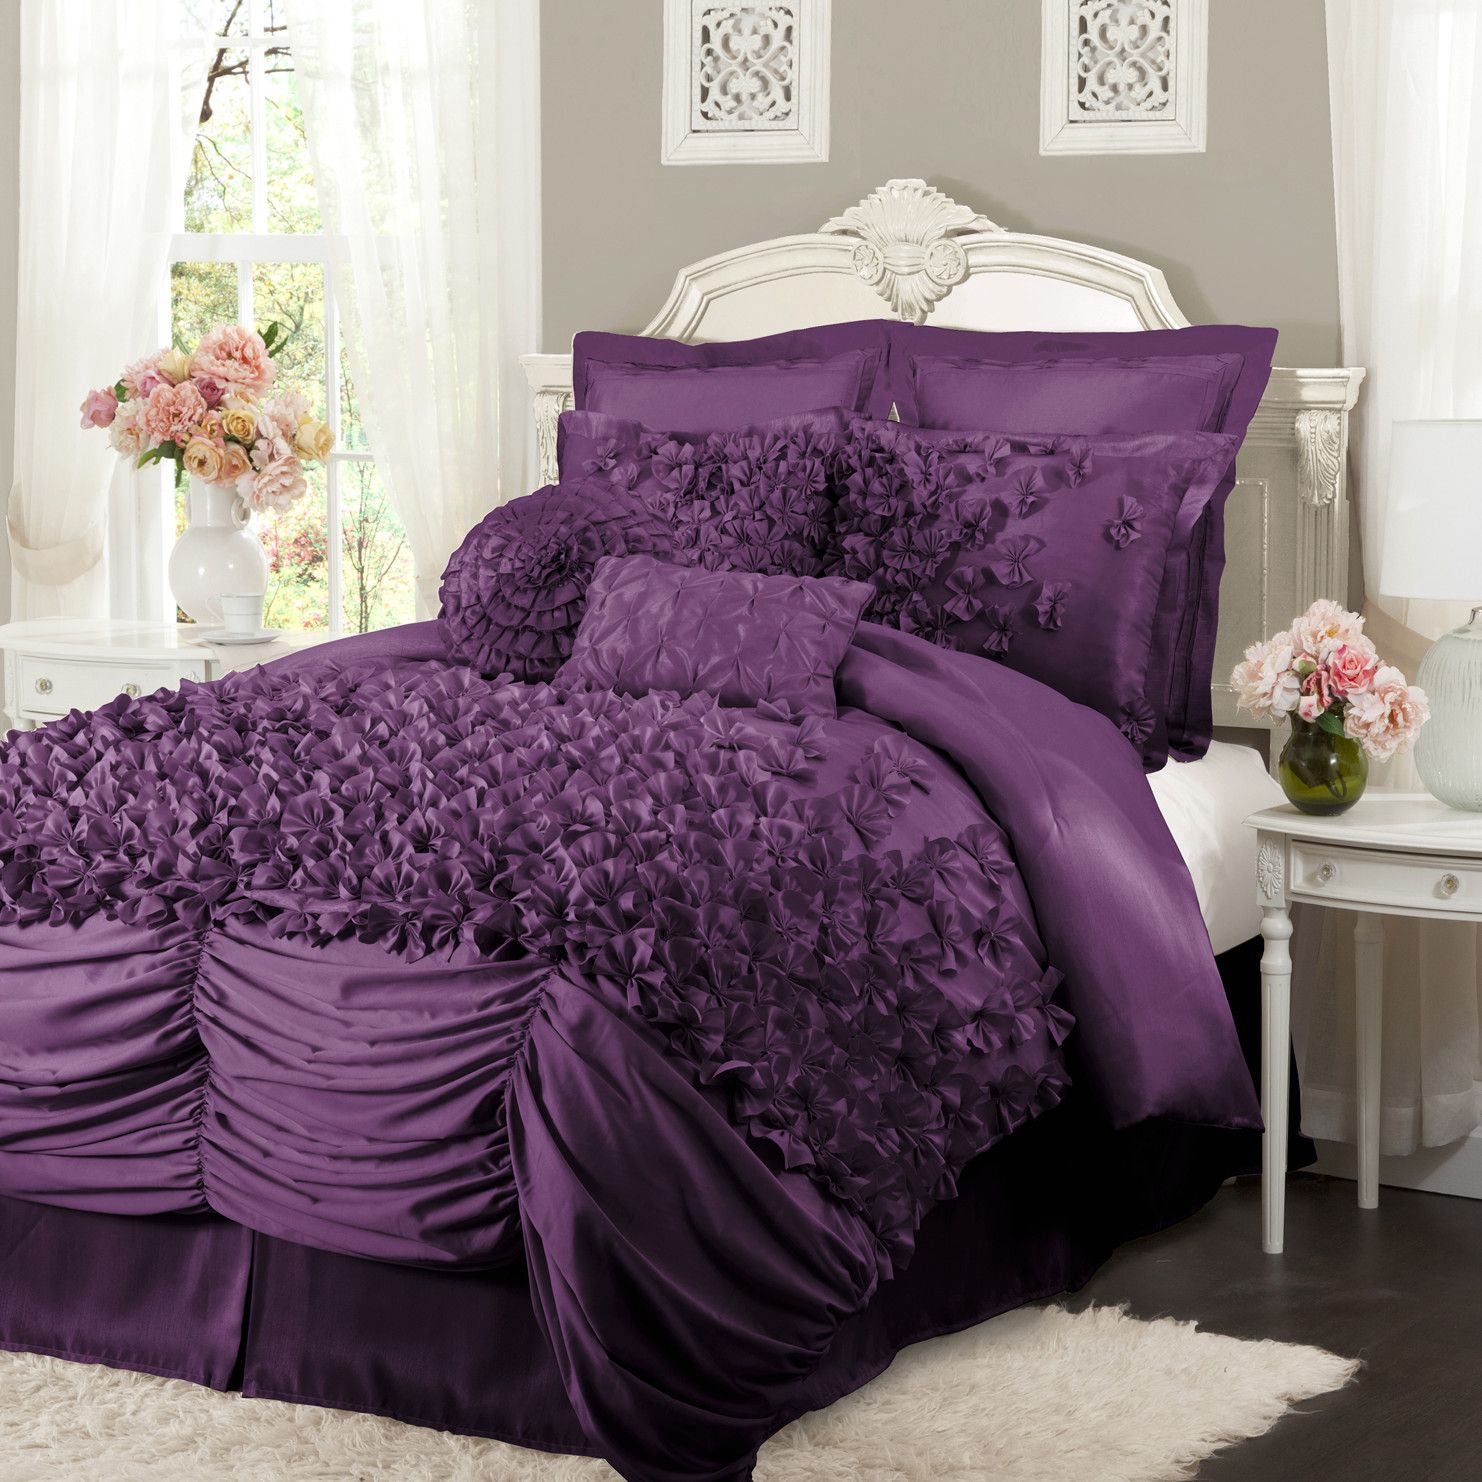 comforter sets girlsple for concept full crib king girls size purple gretchengerzina of bedding com girlsedding dreaded picture toddler twingirls california